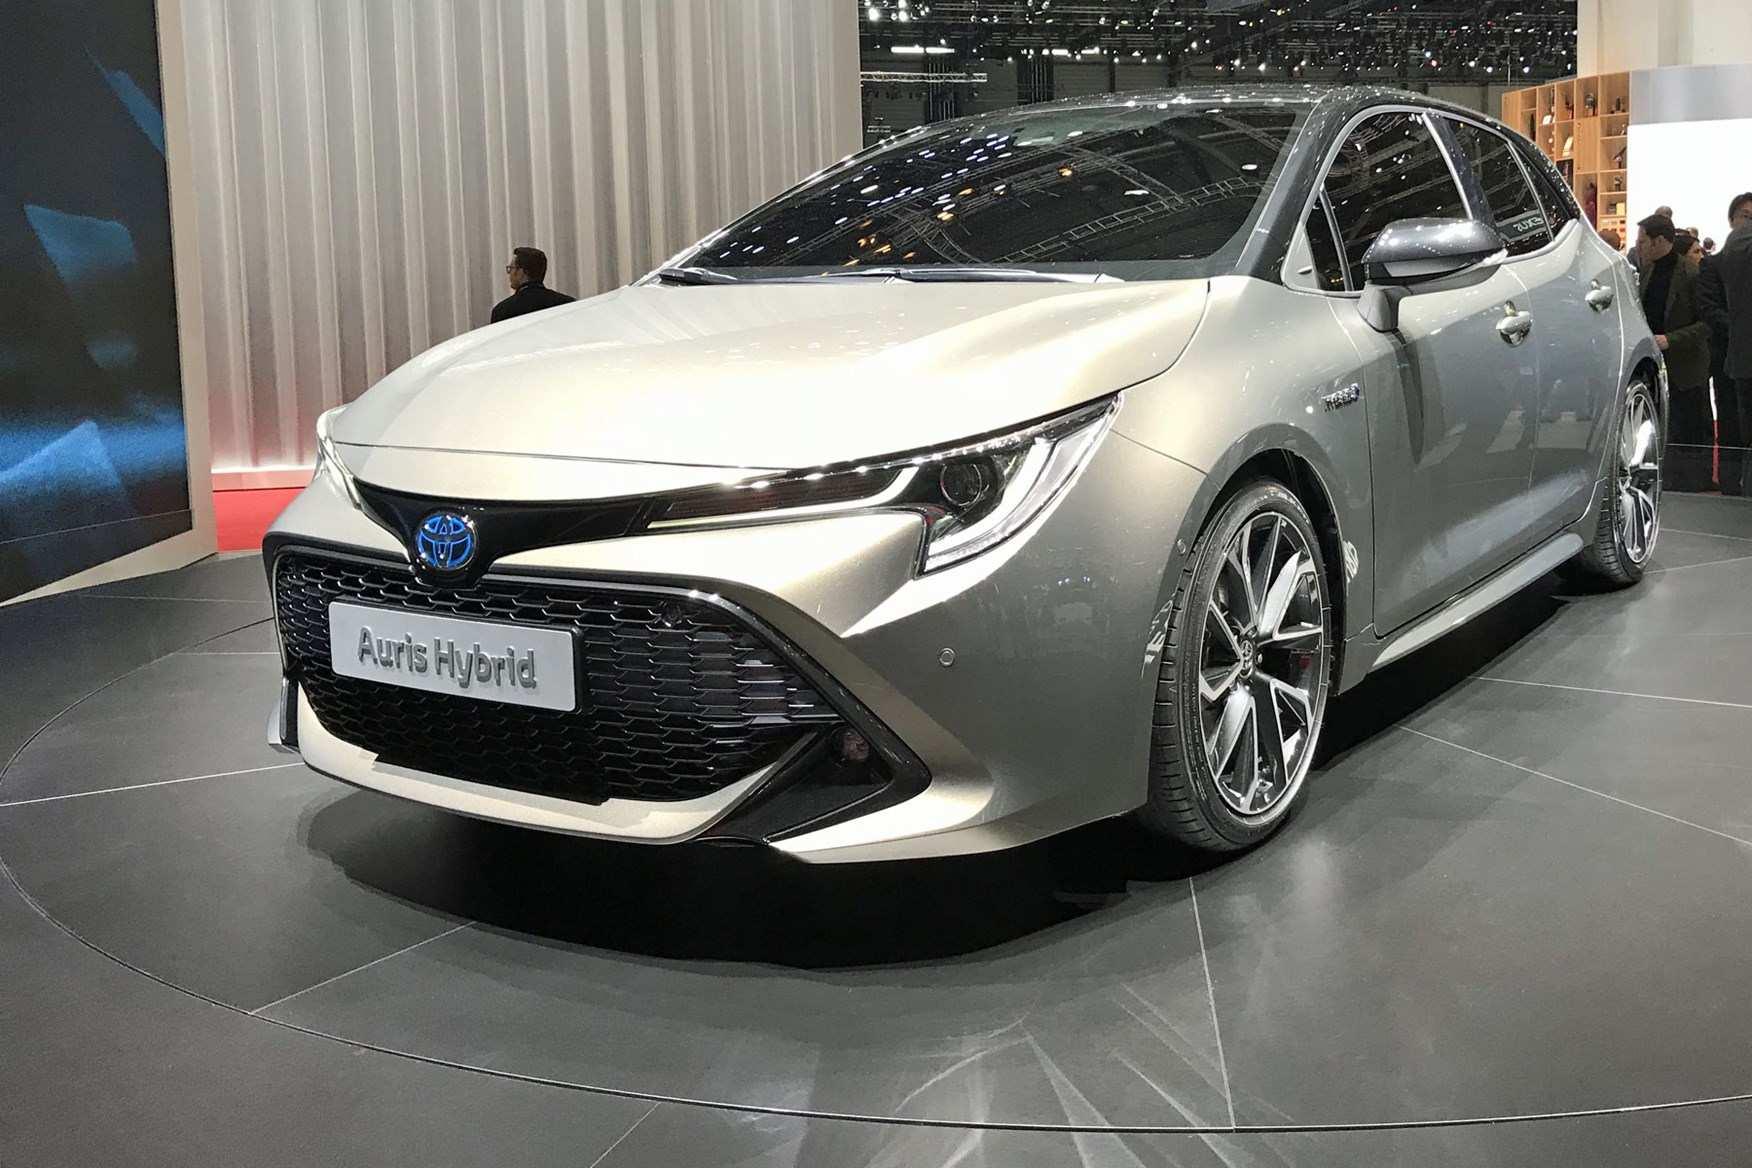 55 Great Toyota Auris 2019 Release Date Style by Toyota Auris 2019 Release Date